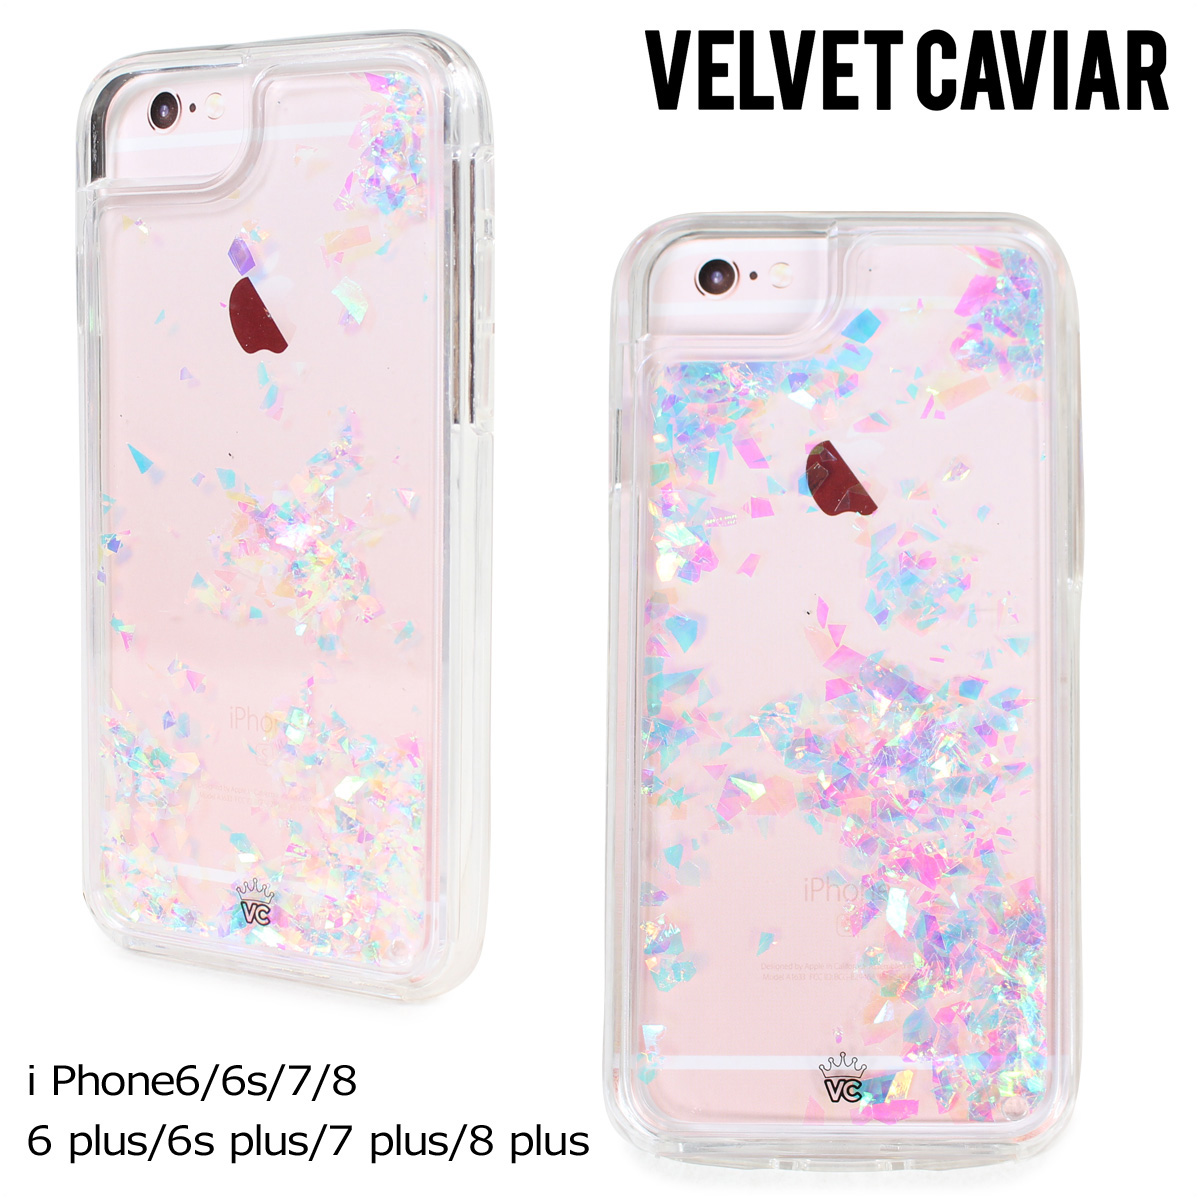 newest c7f46 ecd79 Velvet Caviar velvet caviar iPhone8 iPhone7 8 Plus 7Plus 6s six cases  smartphone iPhone case eyephone iPhone velvet FLAKES DUAL IPHONE CASE  Lady's ...